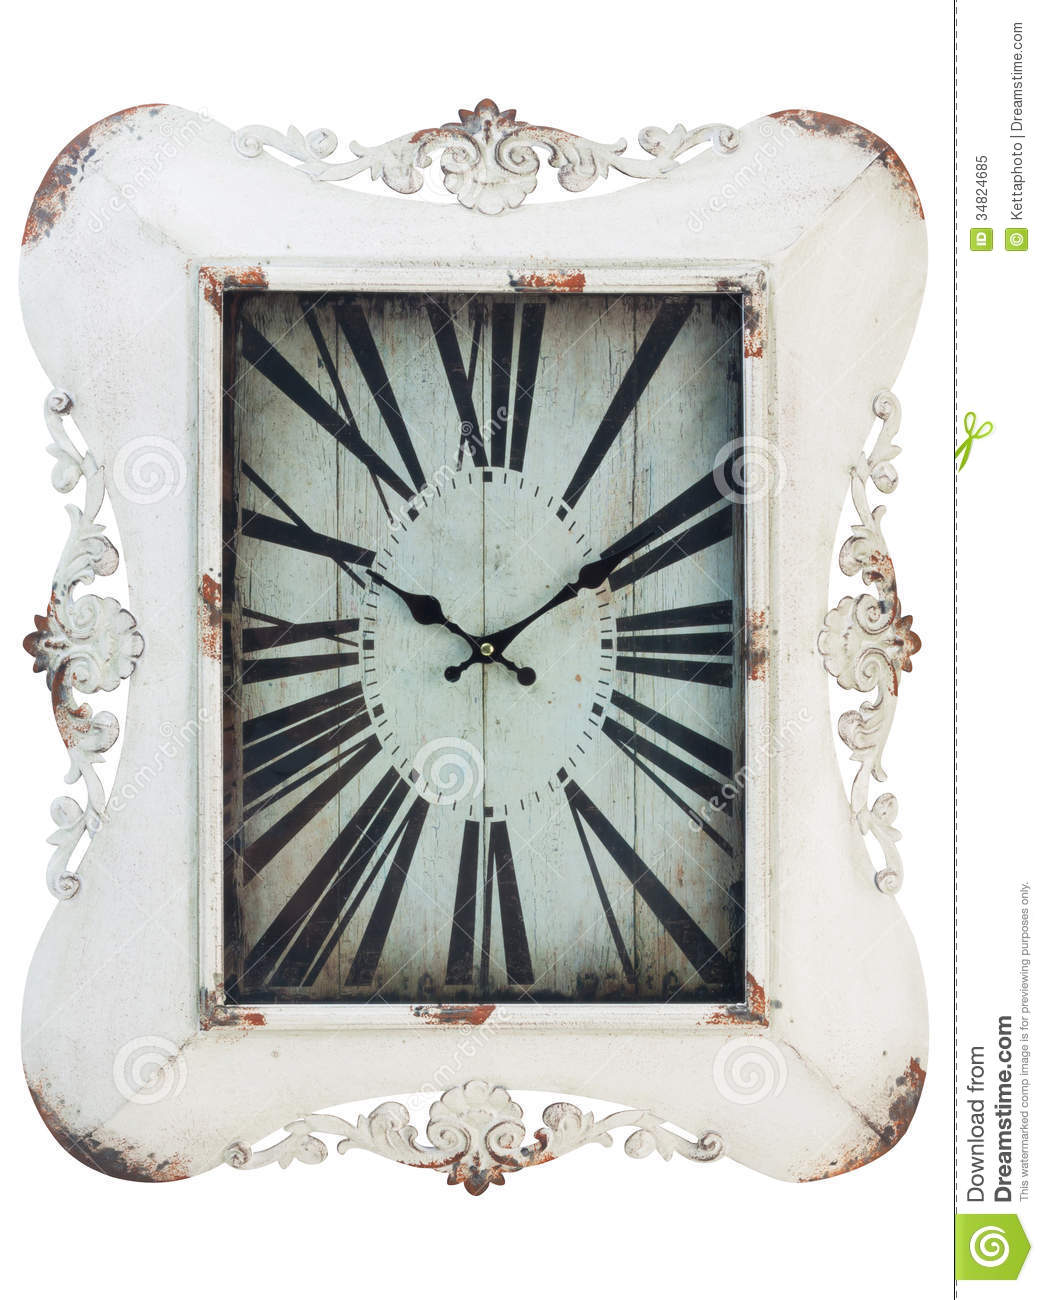 horloge murale de vintage photo libre de droits image. Black Bedroom Furniture Sets. Home Design Ideas